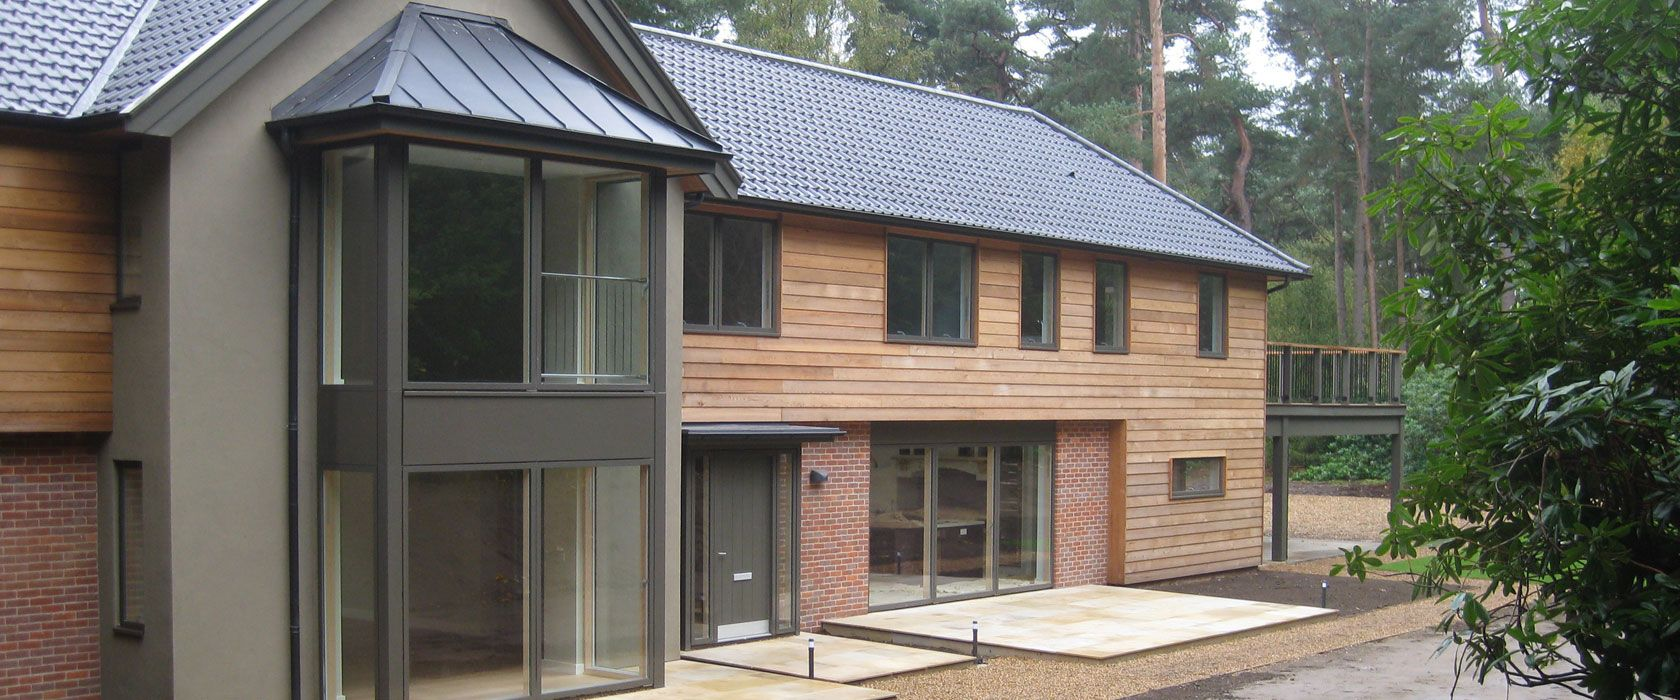 Like The Cladding And New Velfac Windows Think Red Brick